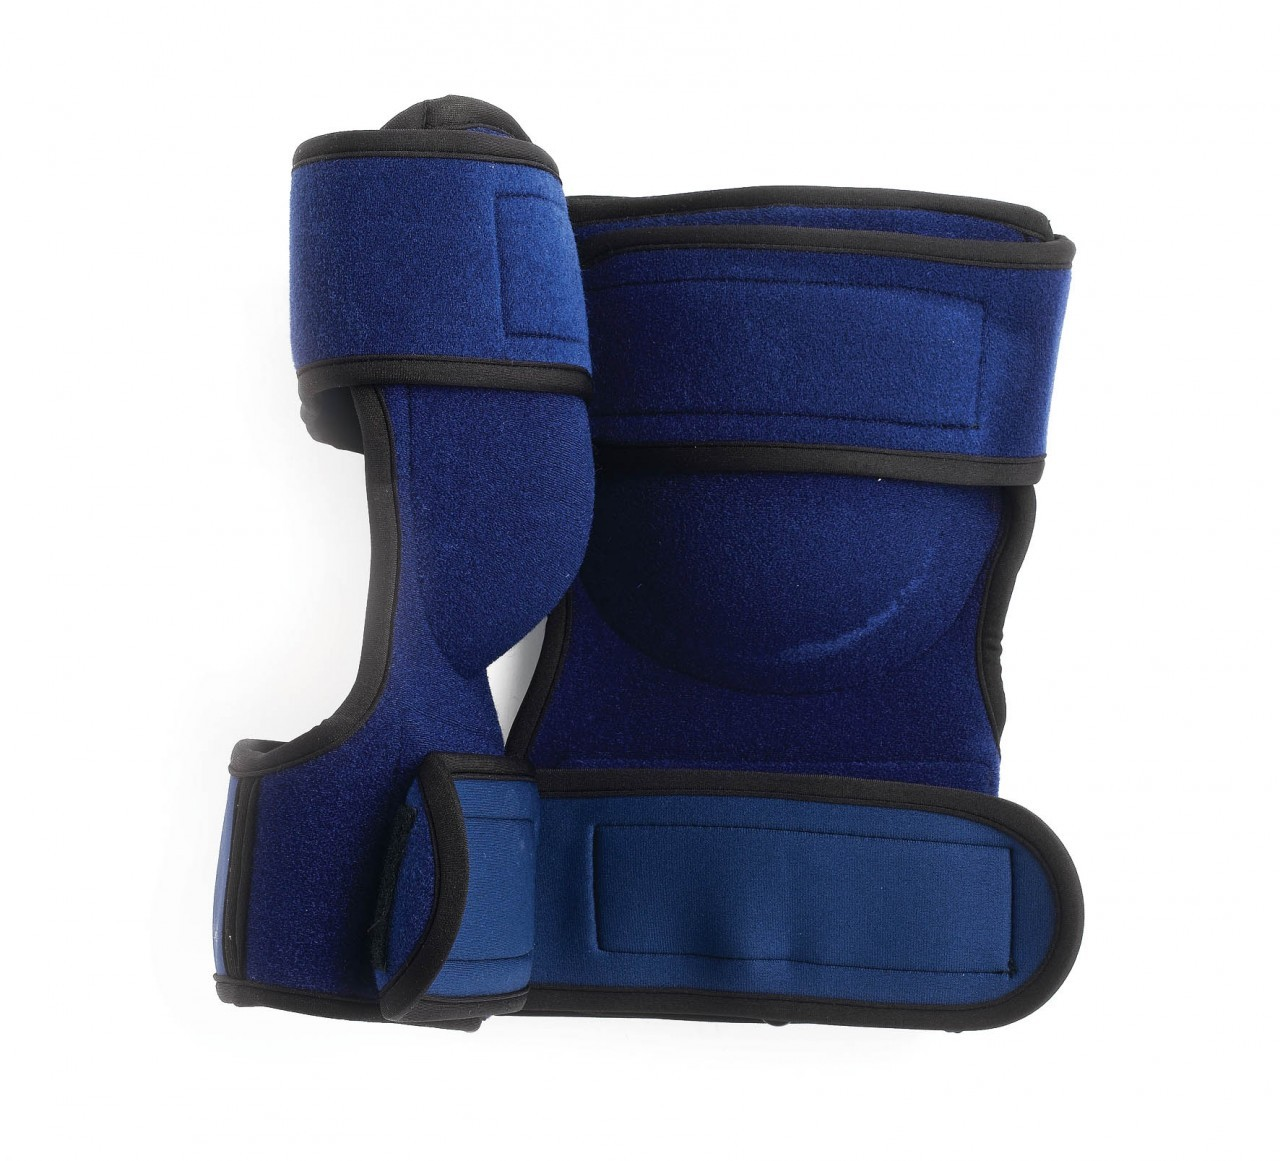 Crain 197 Comfort Knees Knee Pads Deltaquip Supplies Ltd